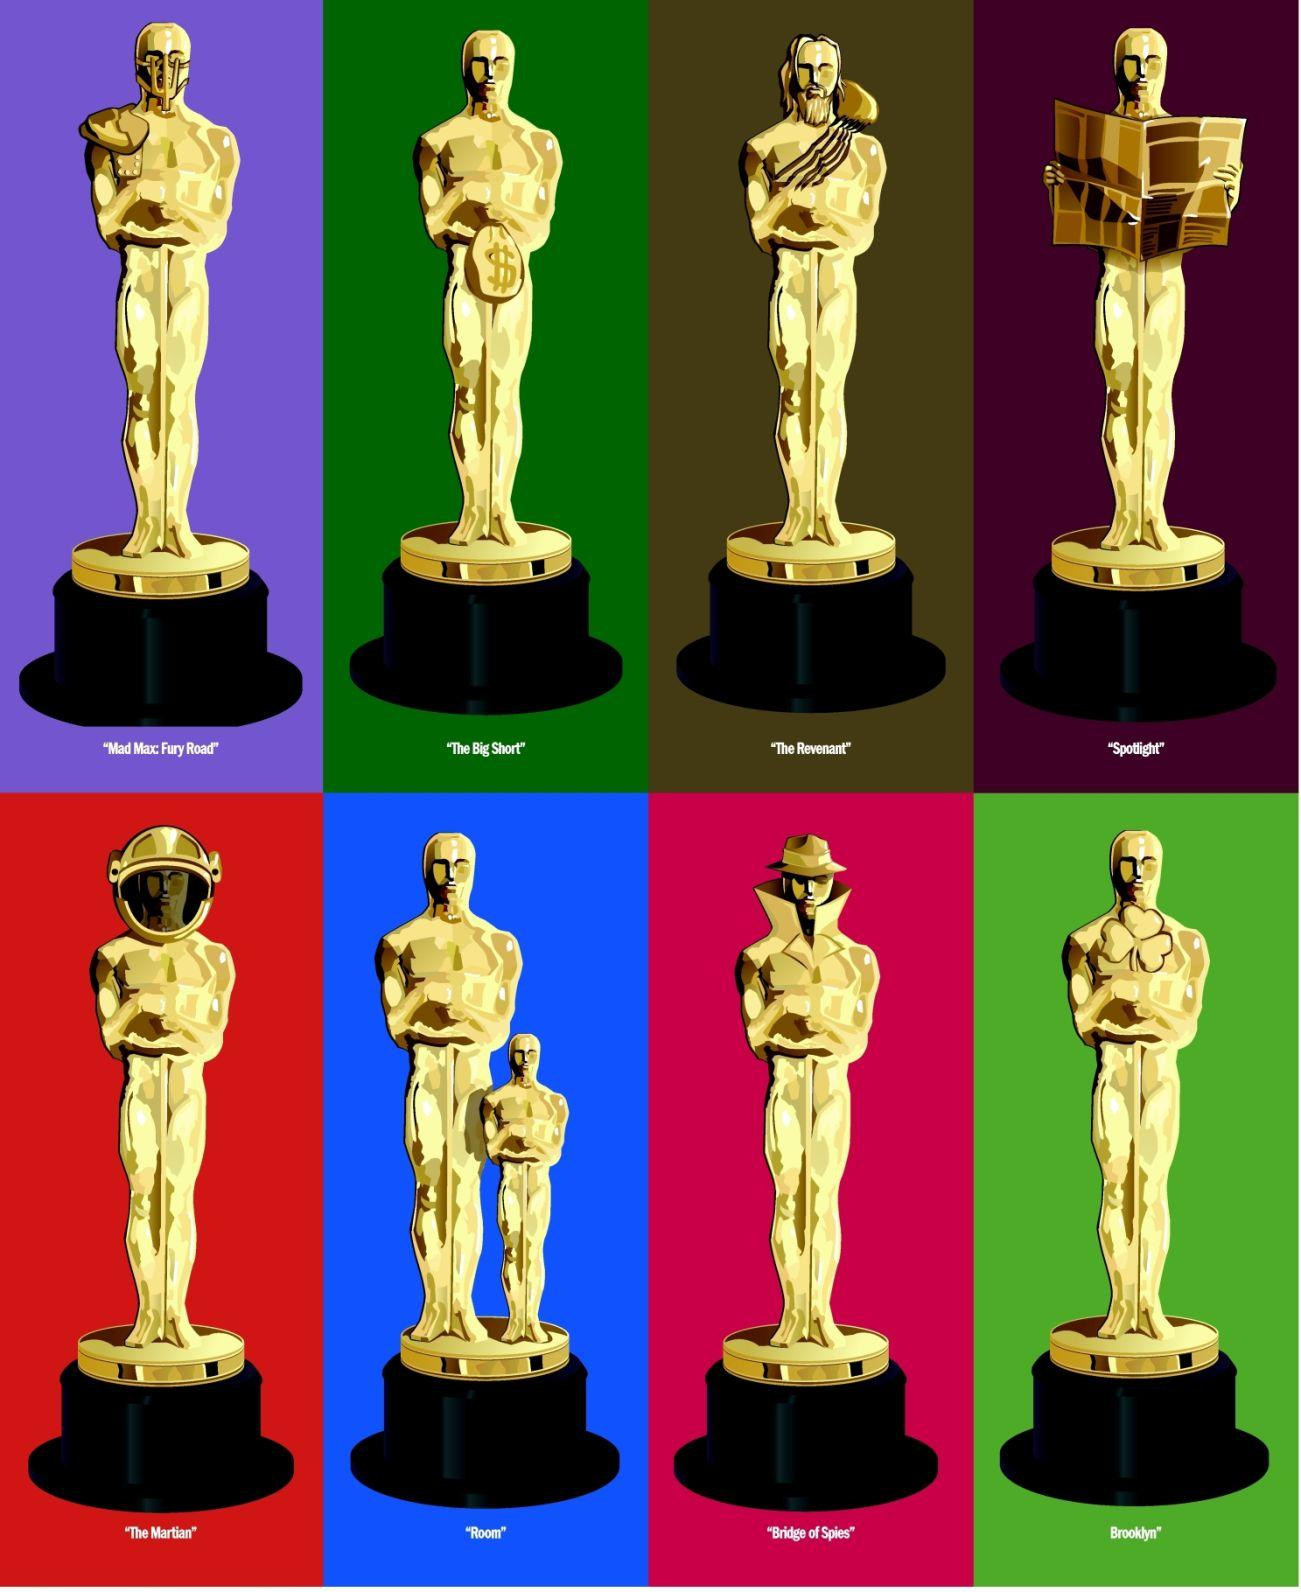 AND THE OSCAR GOES TO ... [IT'S ANYBODY'S GUESS]